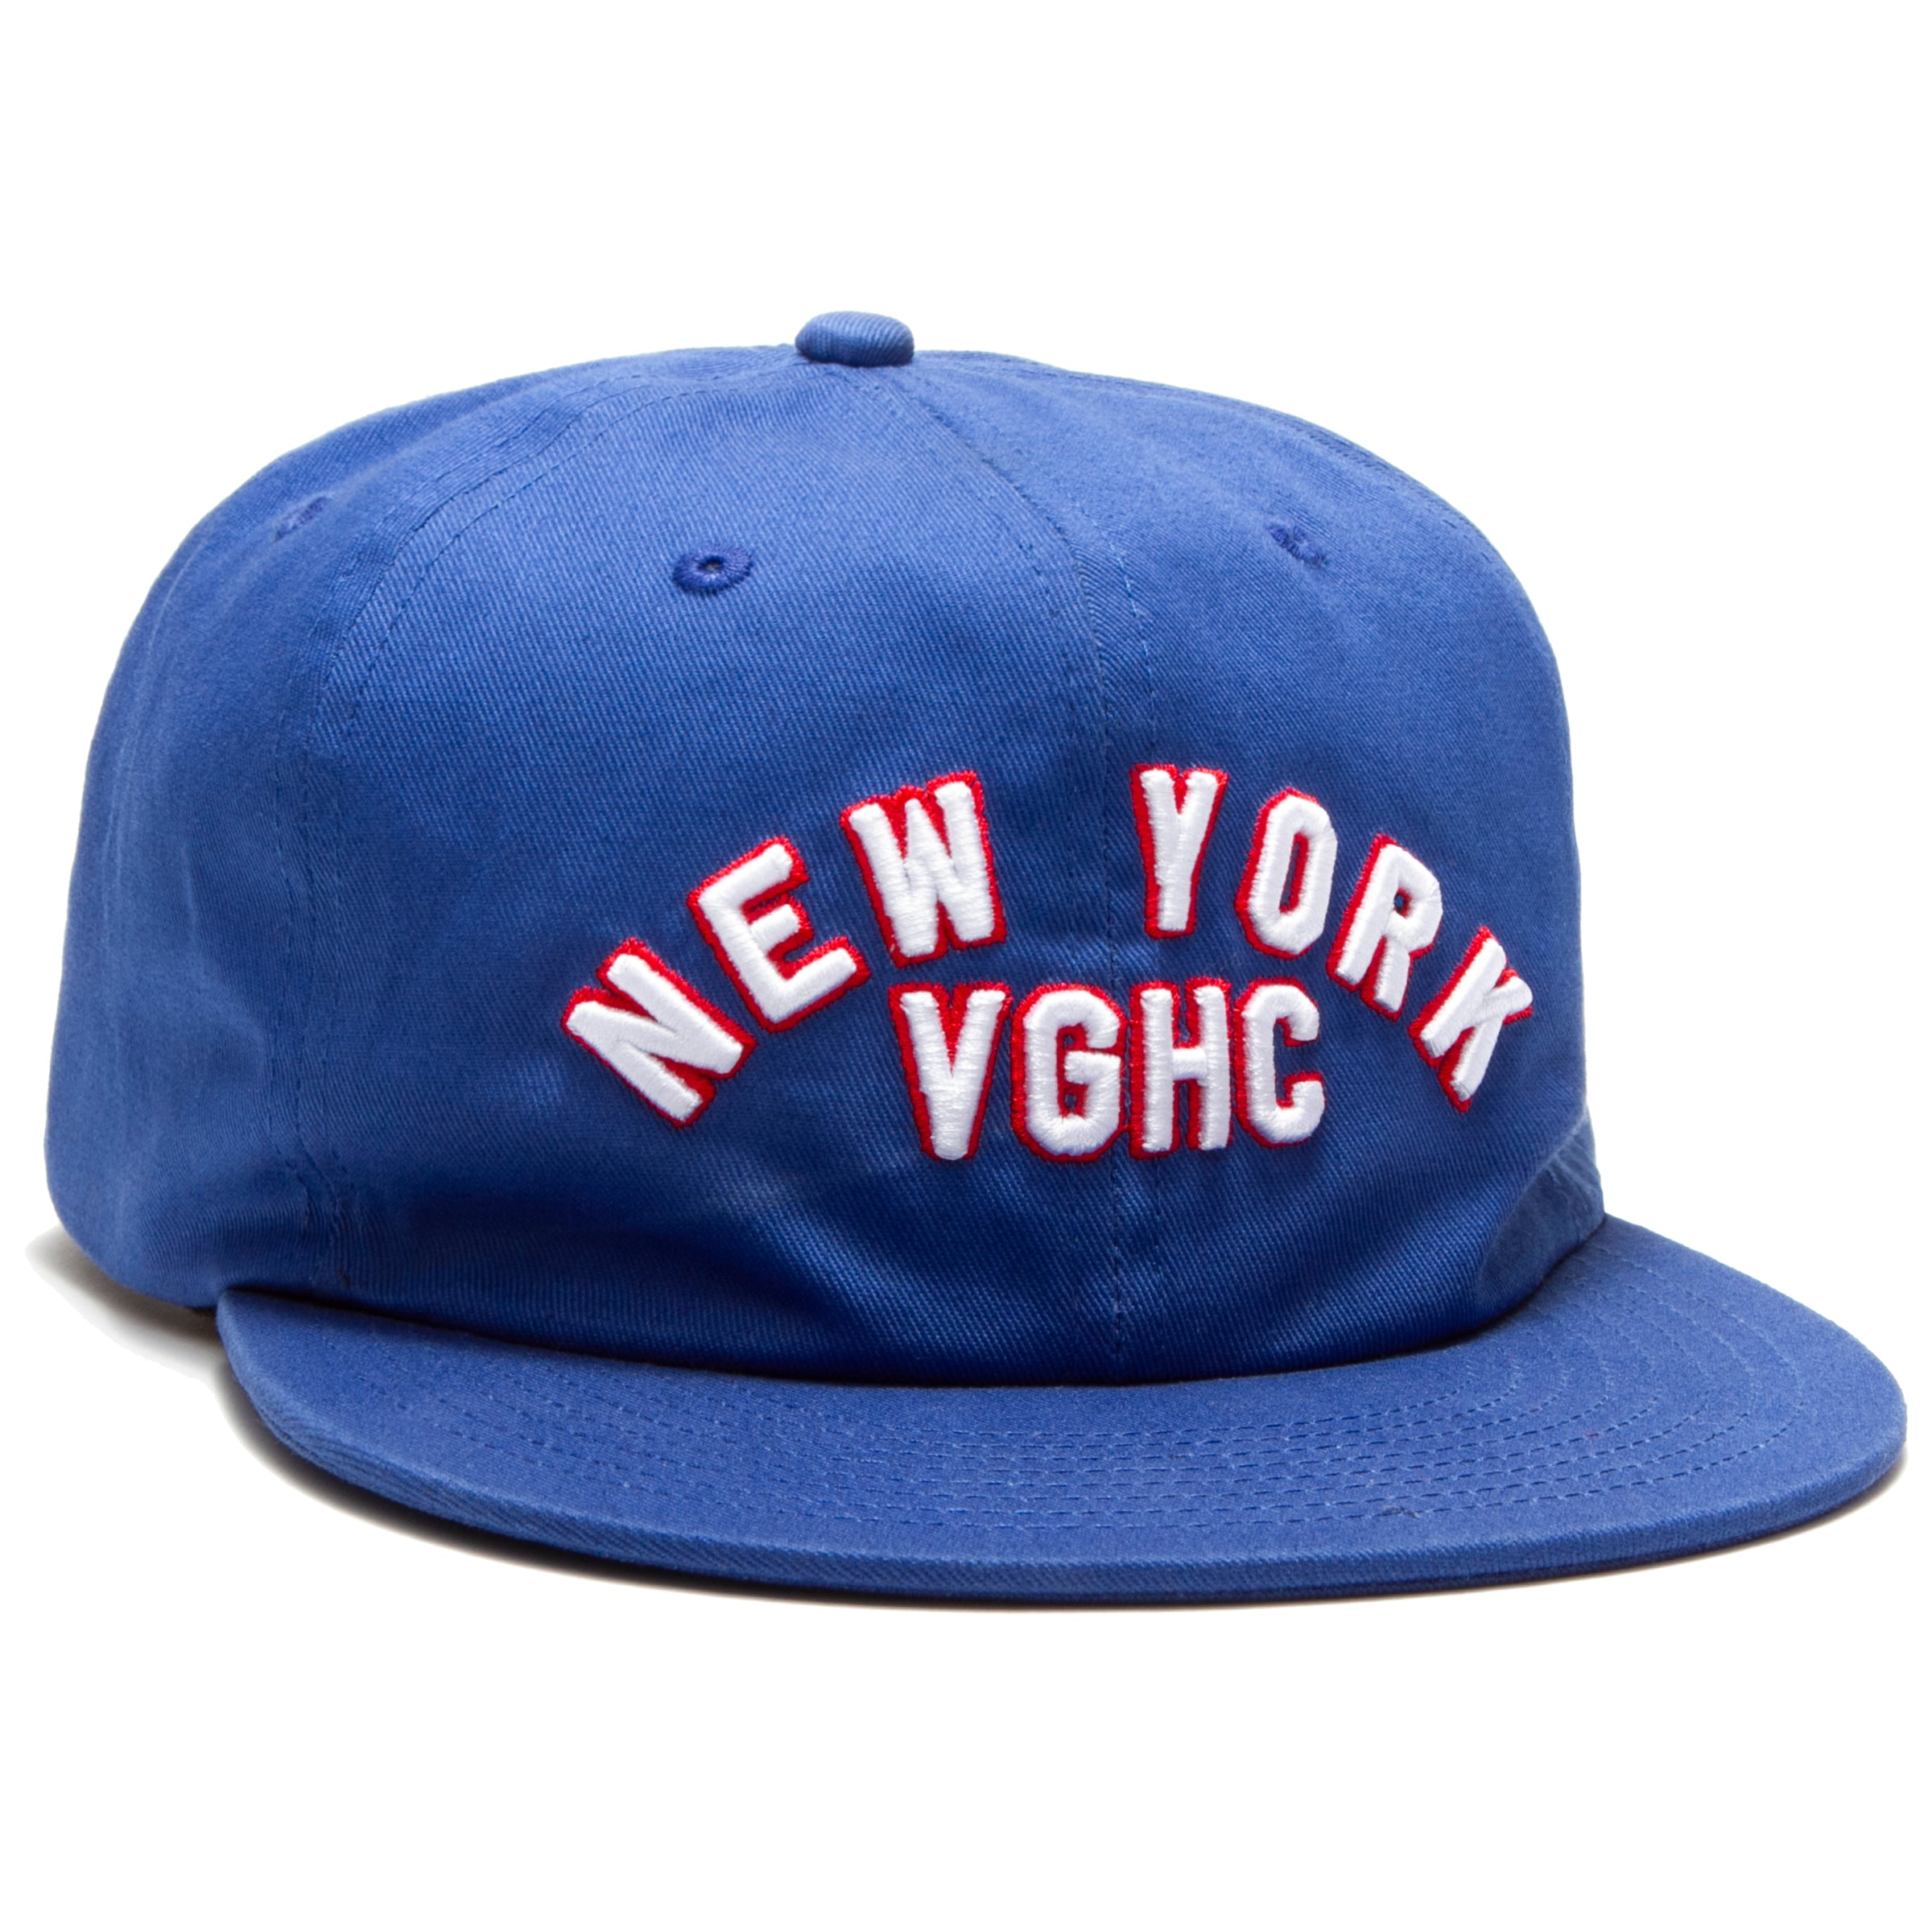 4141d9db5ba Home Team New York Snapback - Royal Blue - Hats - Violent Gentlemen